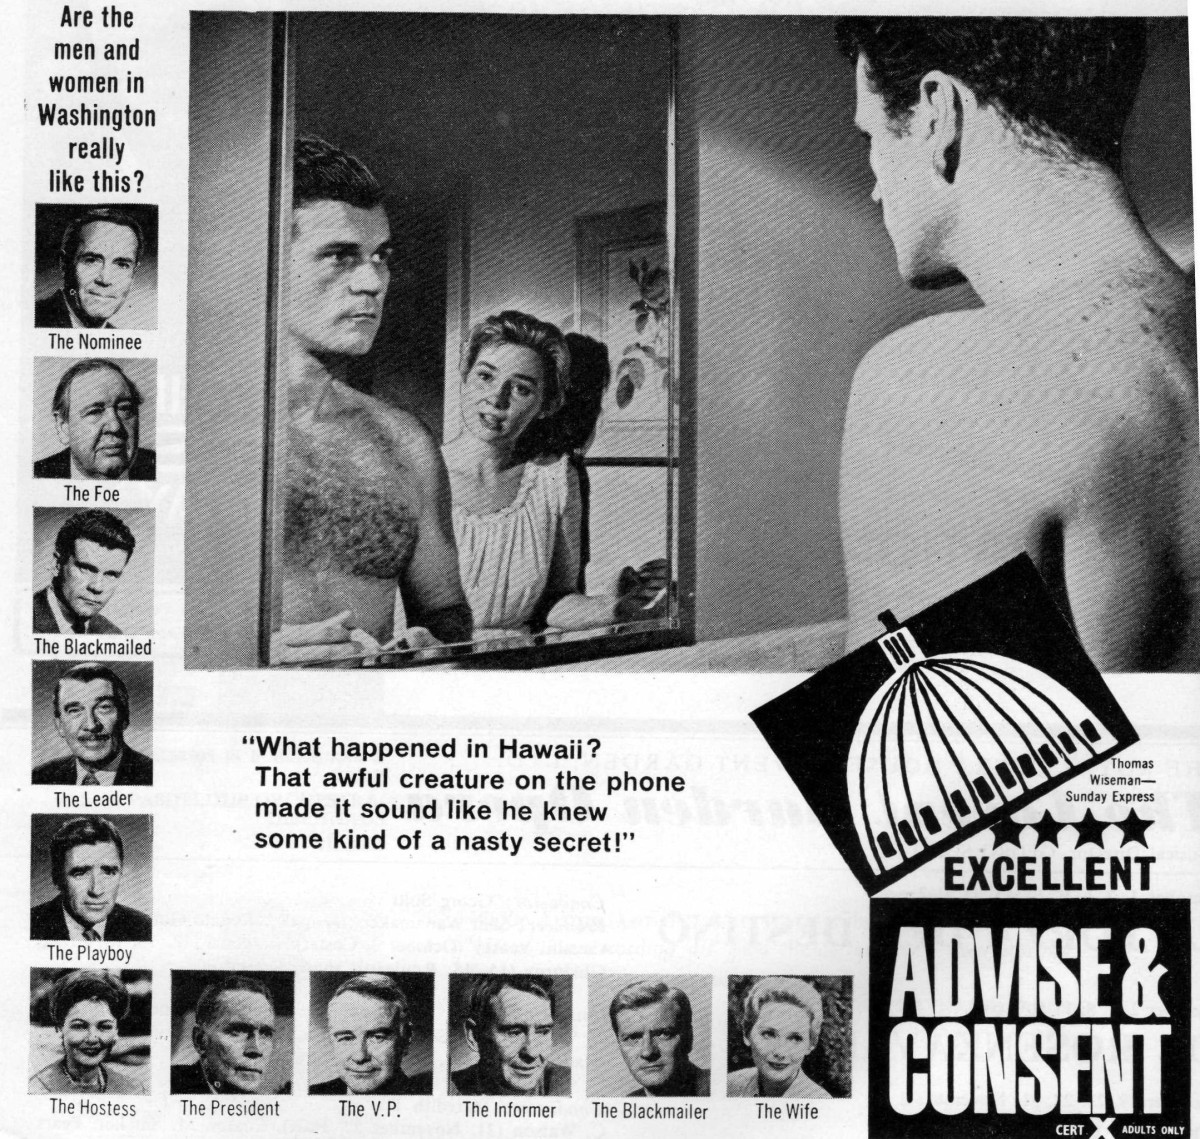 Advise and Consent (1962)****